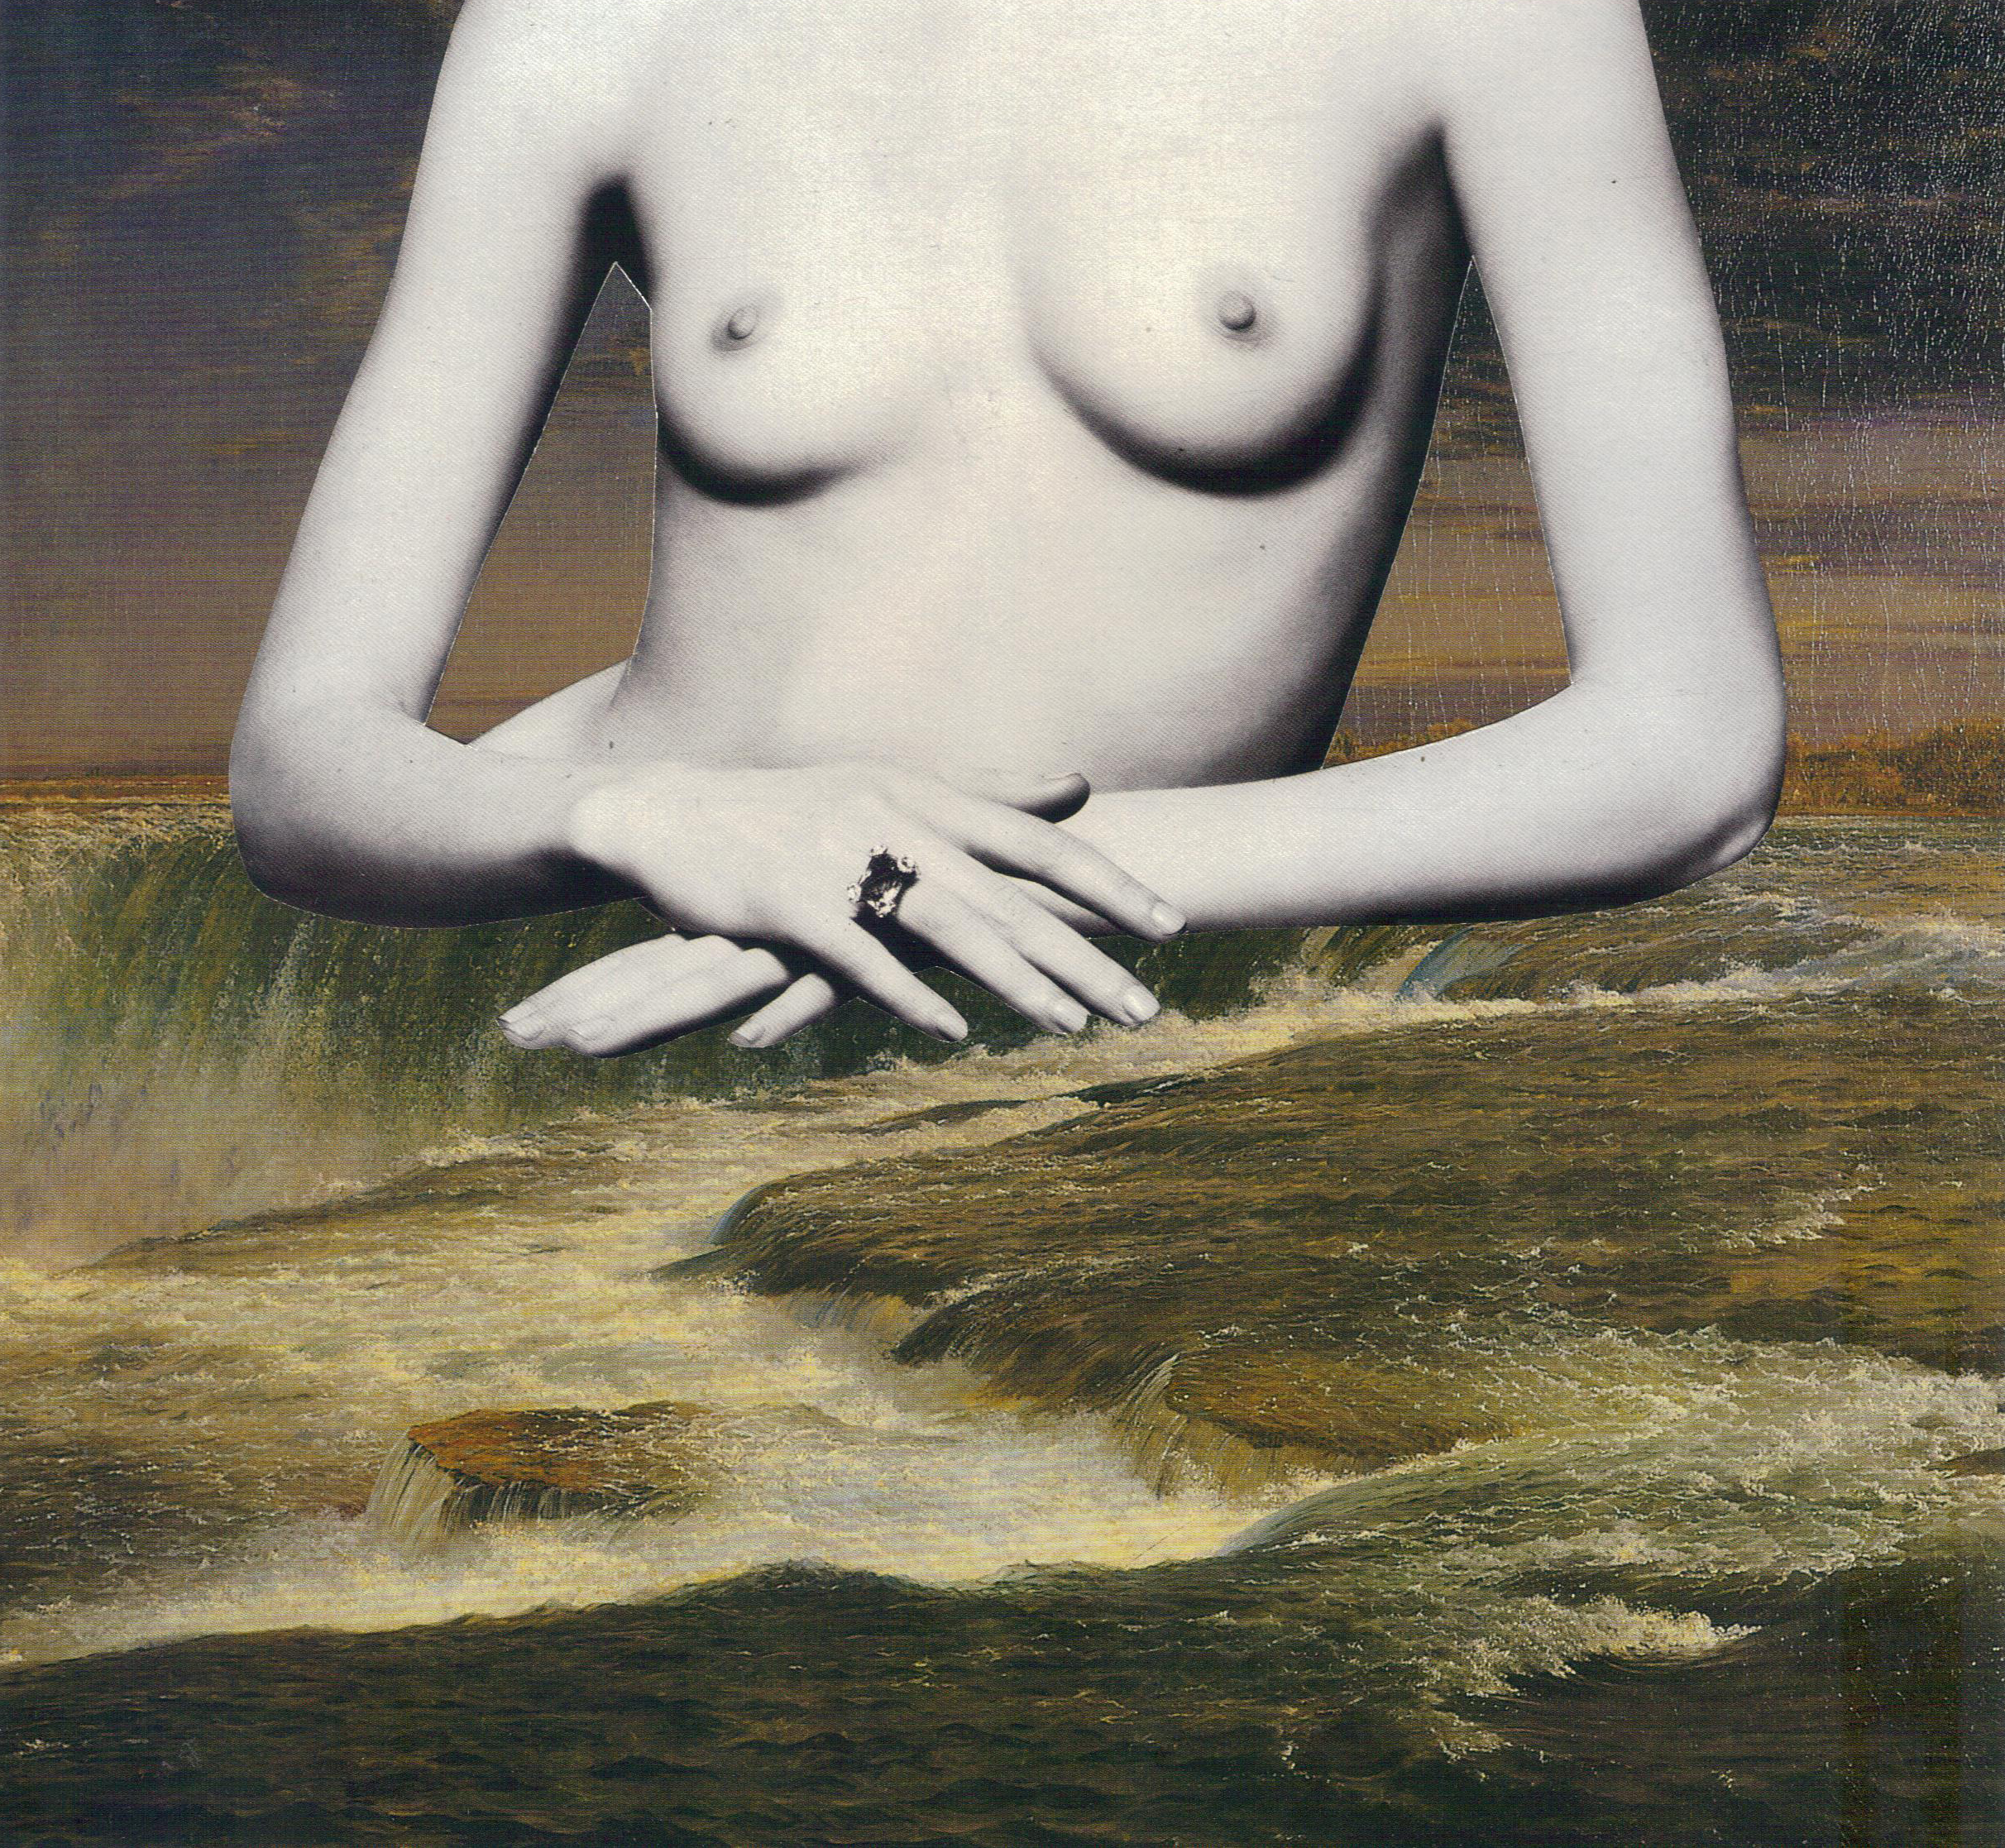 Mother Nature, 2012